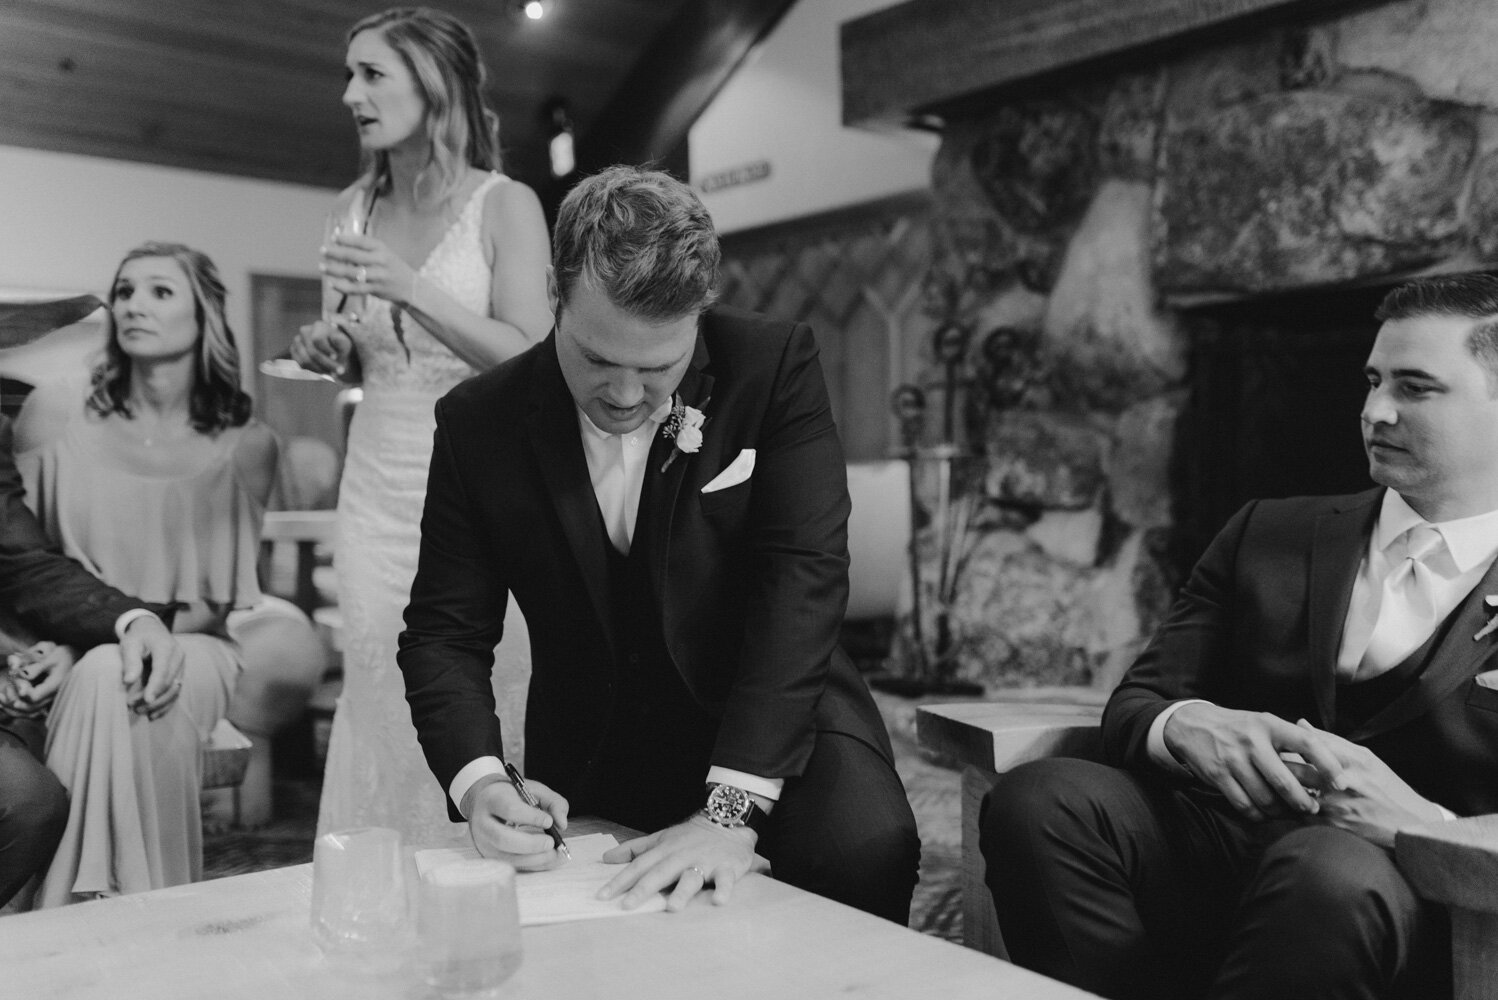 Edgewood Tahoe Wedding, photo of groom signing his marriage license